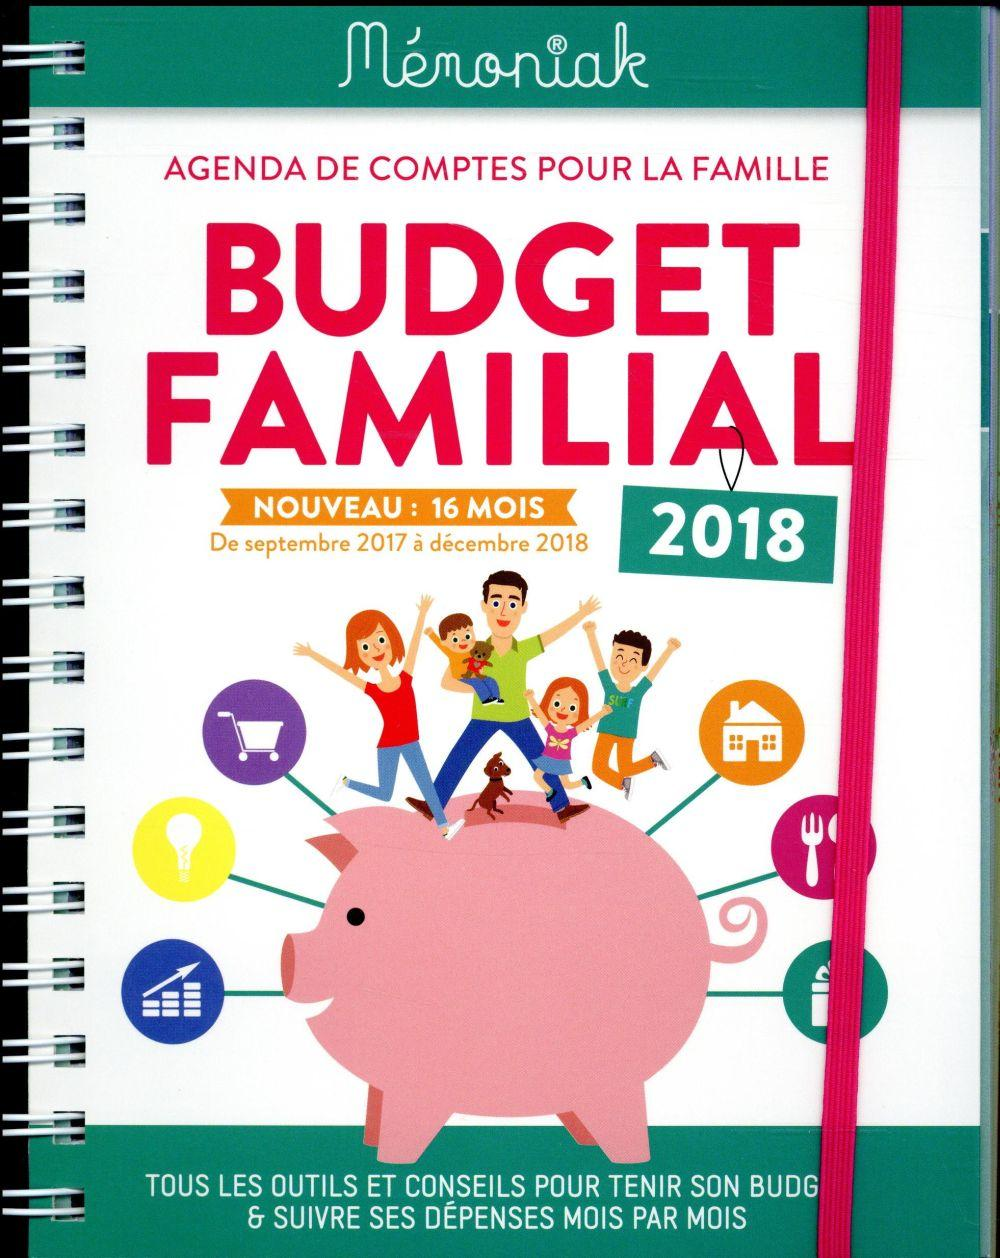 budget familial m moniak dition 2017 2018 collectif bertrand lobry livre france loisirs. Black Bedroom Furniture Sets. Home Design Ideas